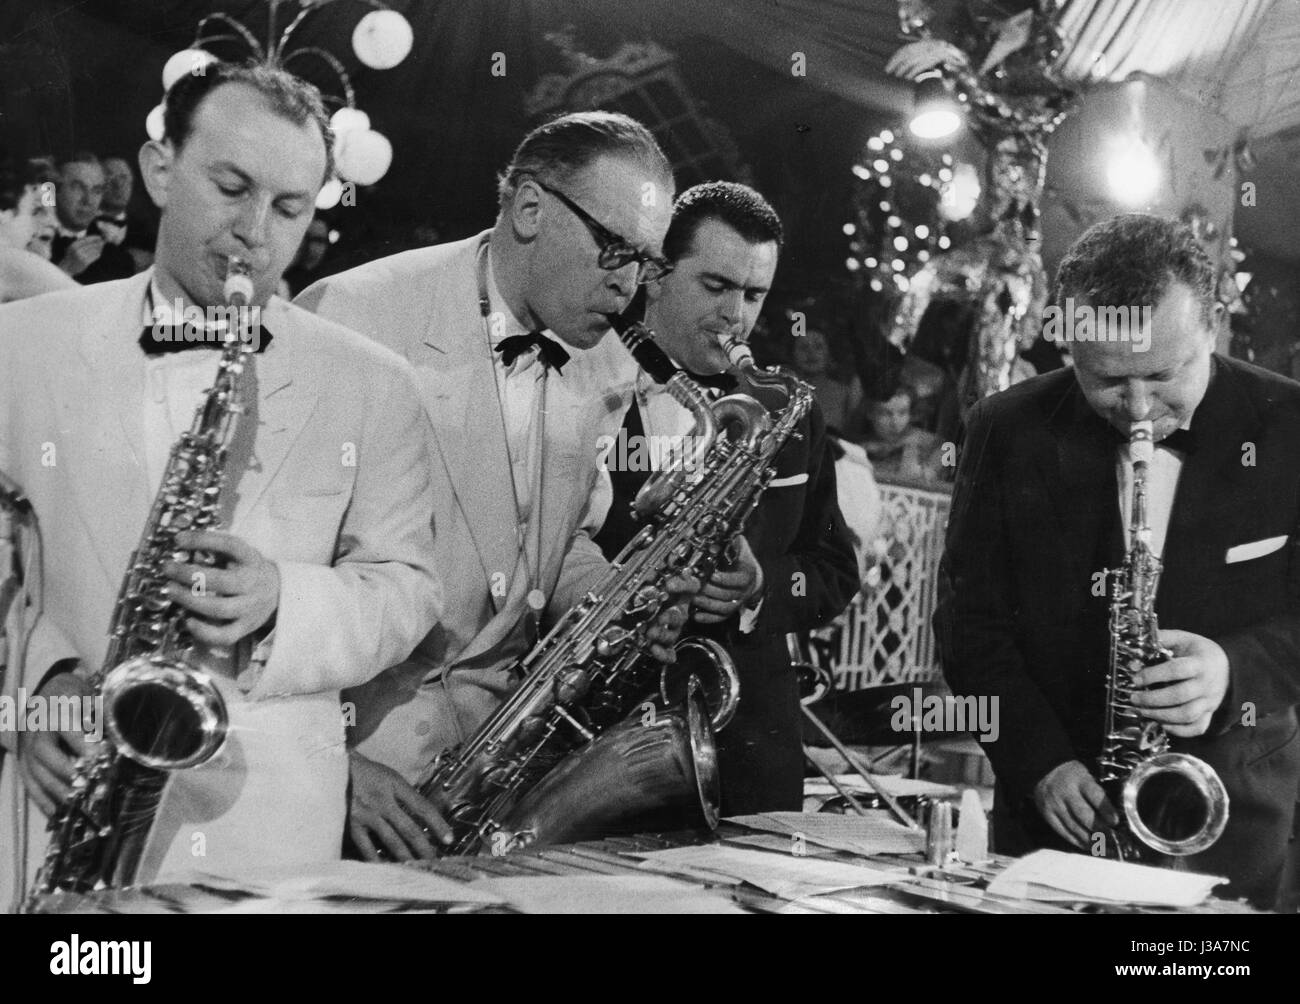 Saxophonists on the Bal Pare of the Muenchner Illustrierte, 1958 - Stock Image